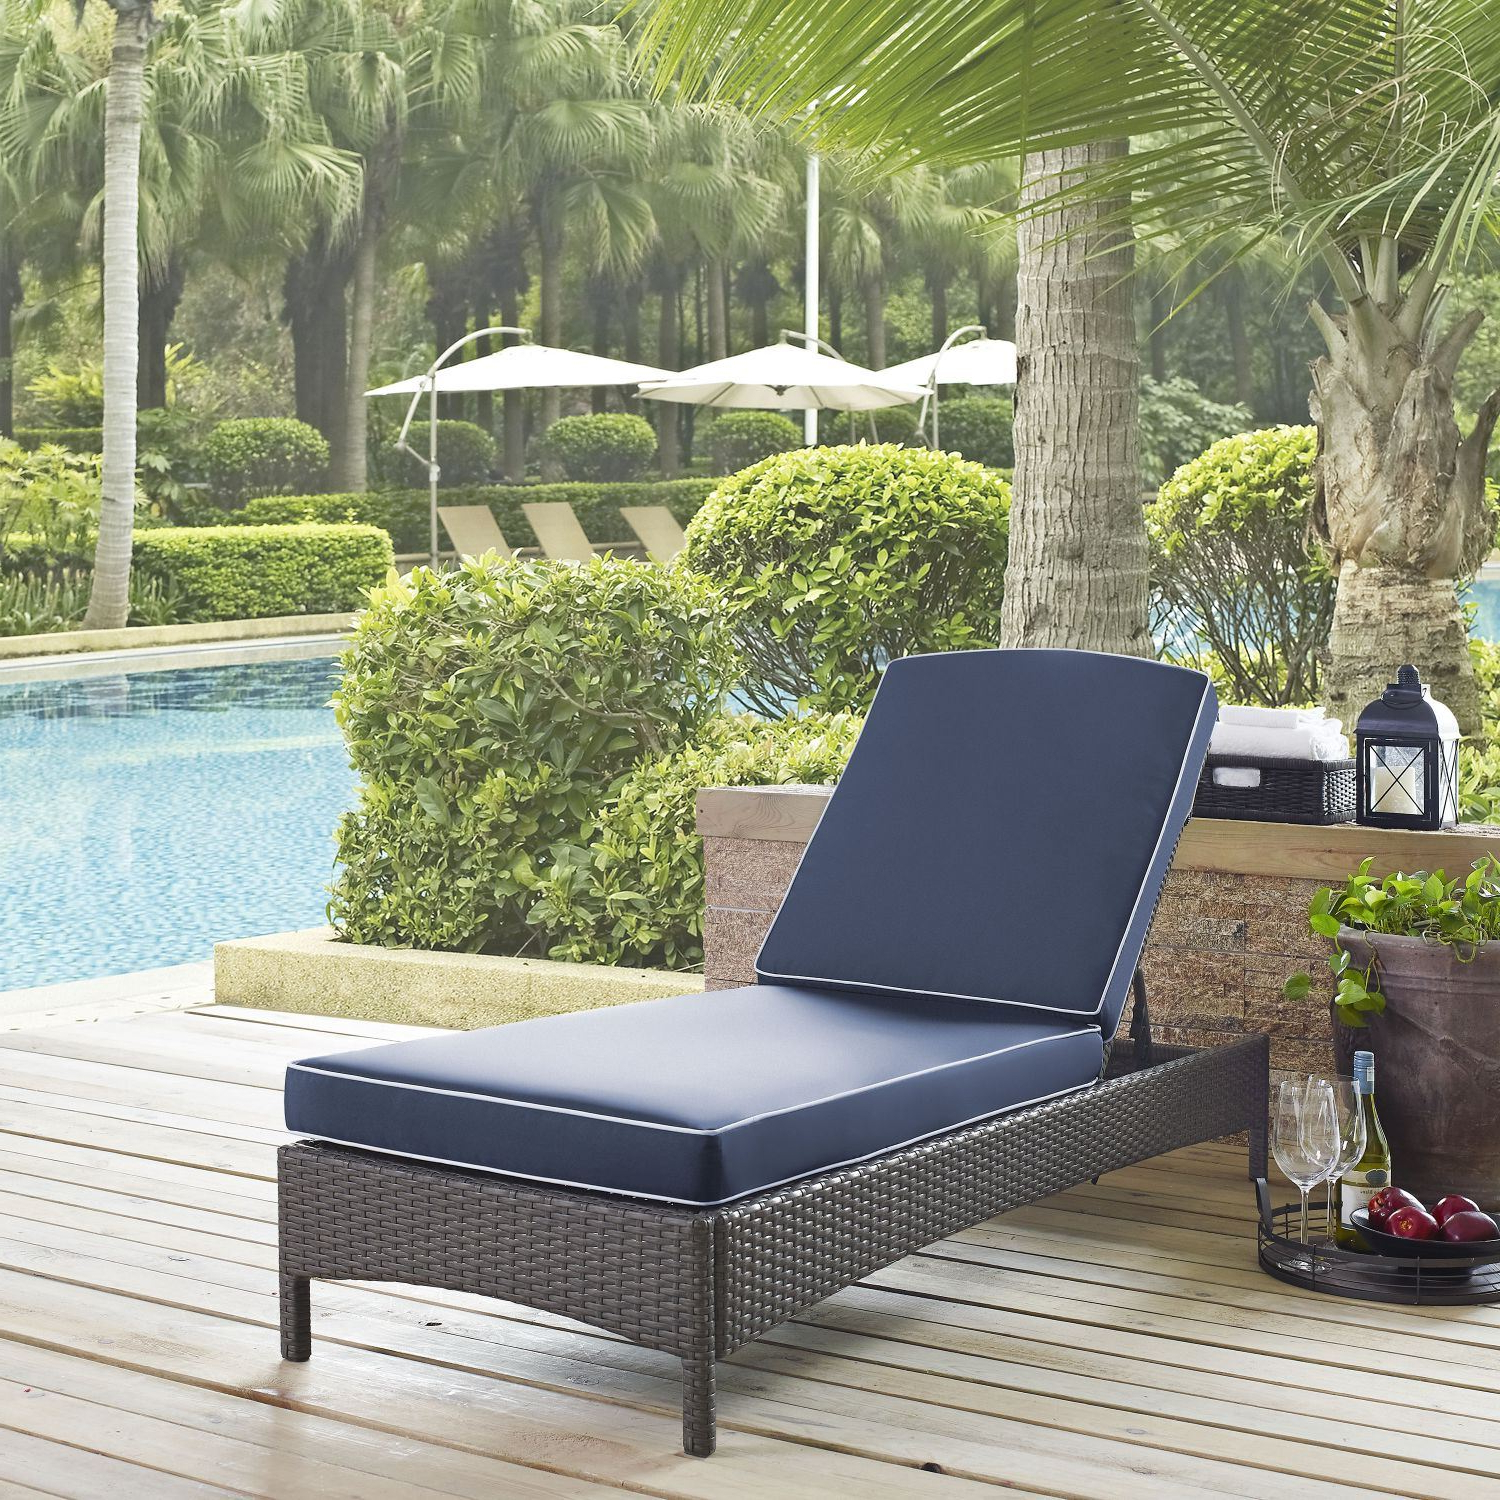 Outdoor Wicker Chaise Lounge Chairs Throughout Favorite Palm Harbor Outdoor Wicker Chaise Lounge*d (Gallery 25 of 25)